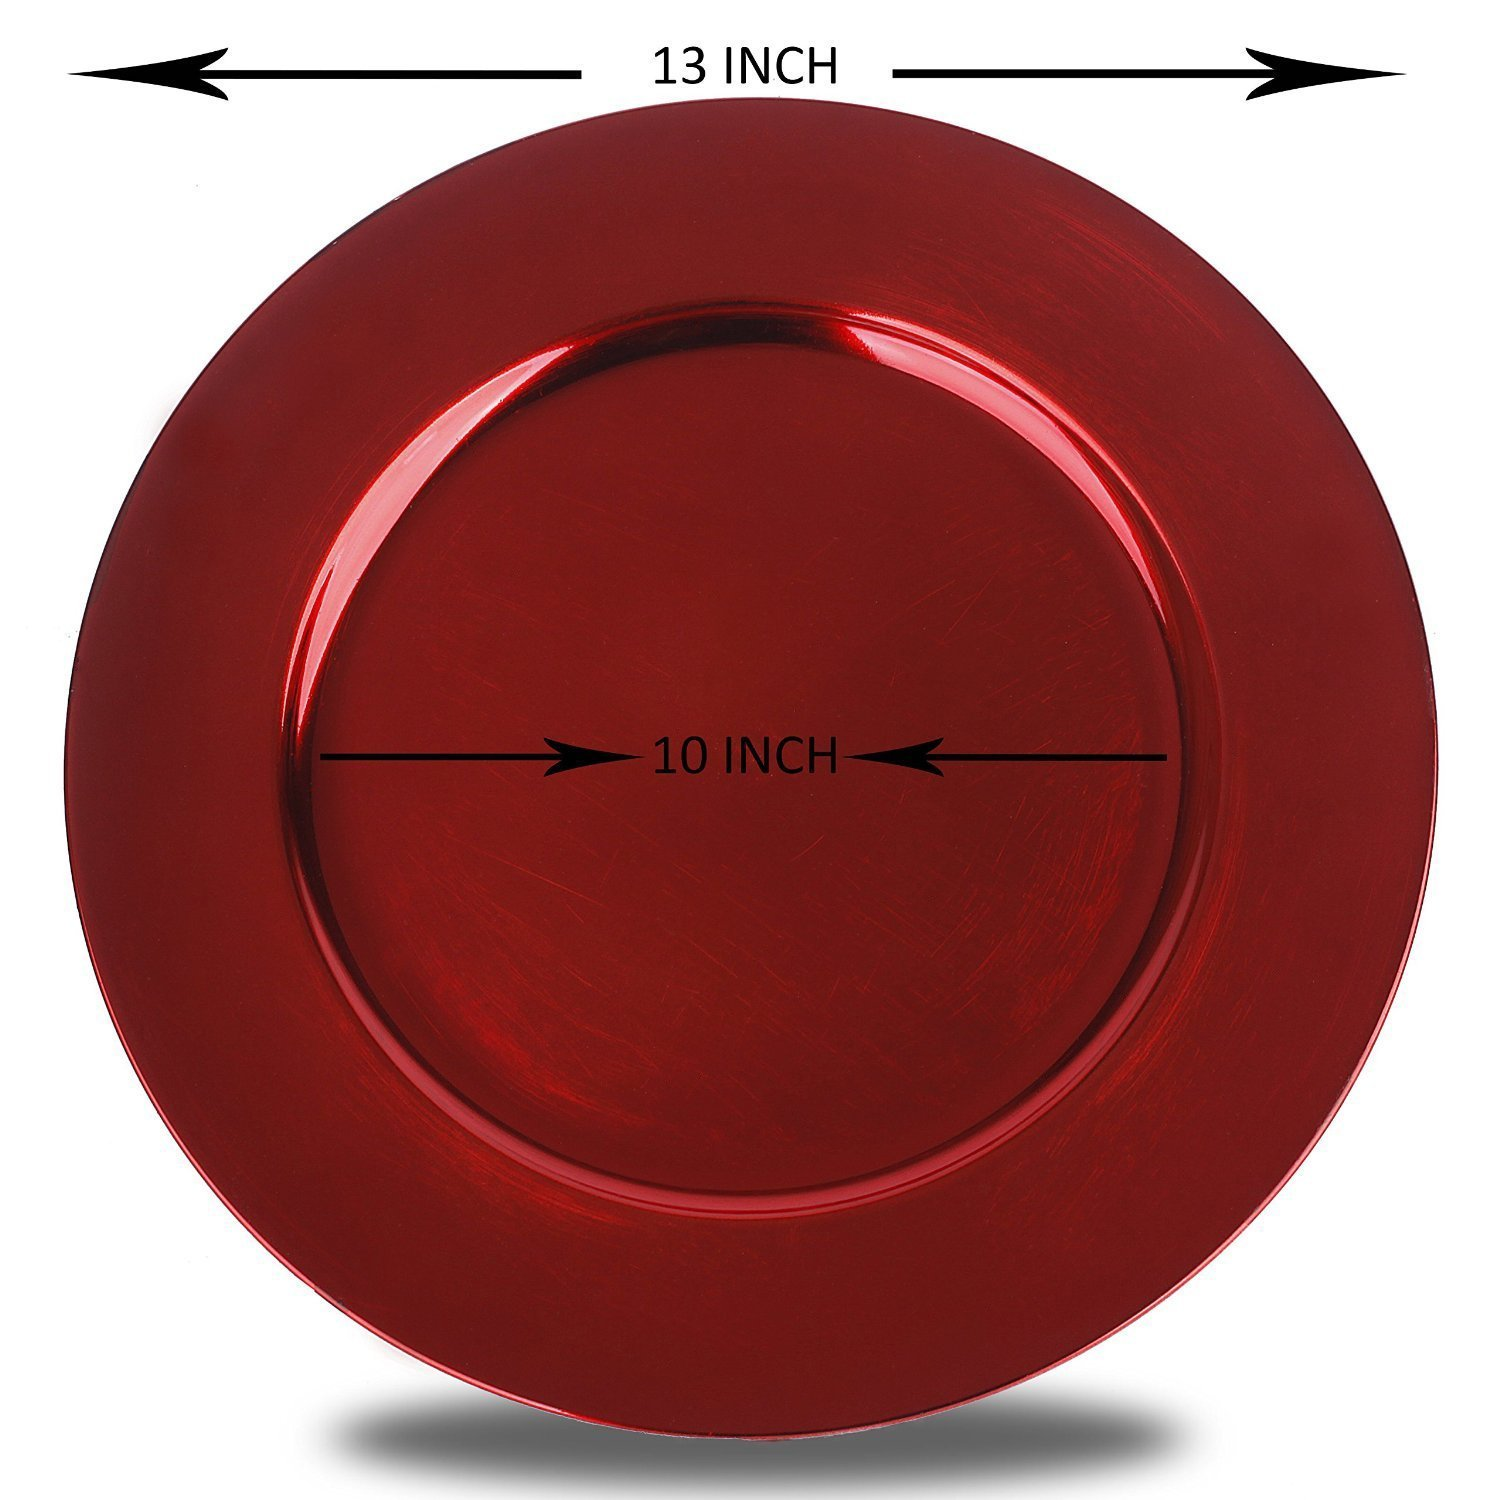 Luxurious Round Charger Dinner Plates, Burgundy, Red 13 inch, Set of 1,2,4,6, or 12 (1) - Up Your Dinner Game